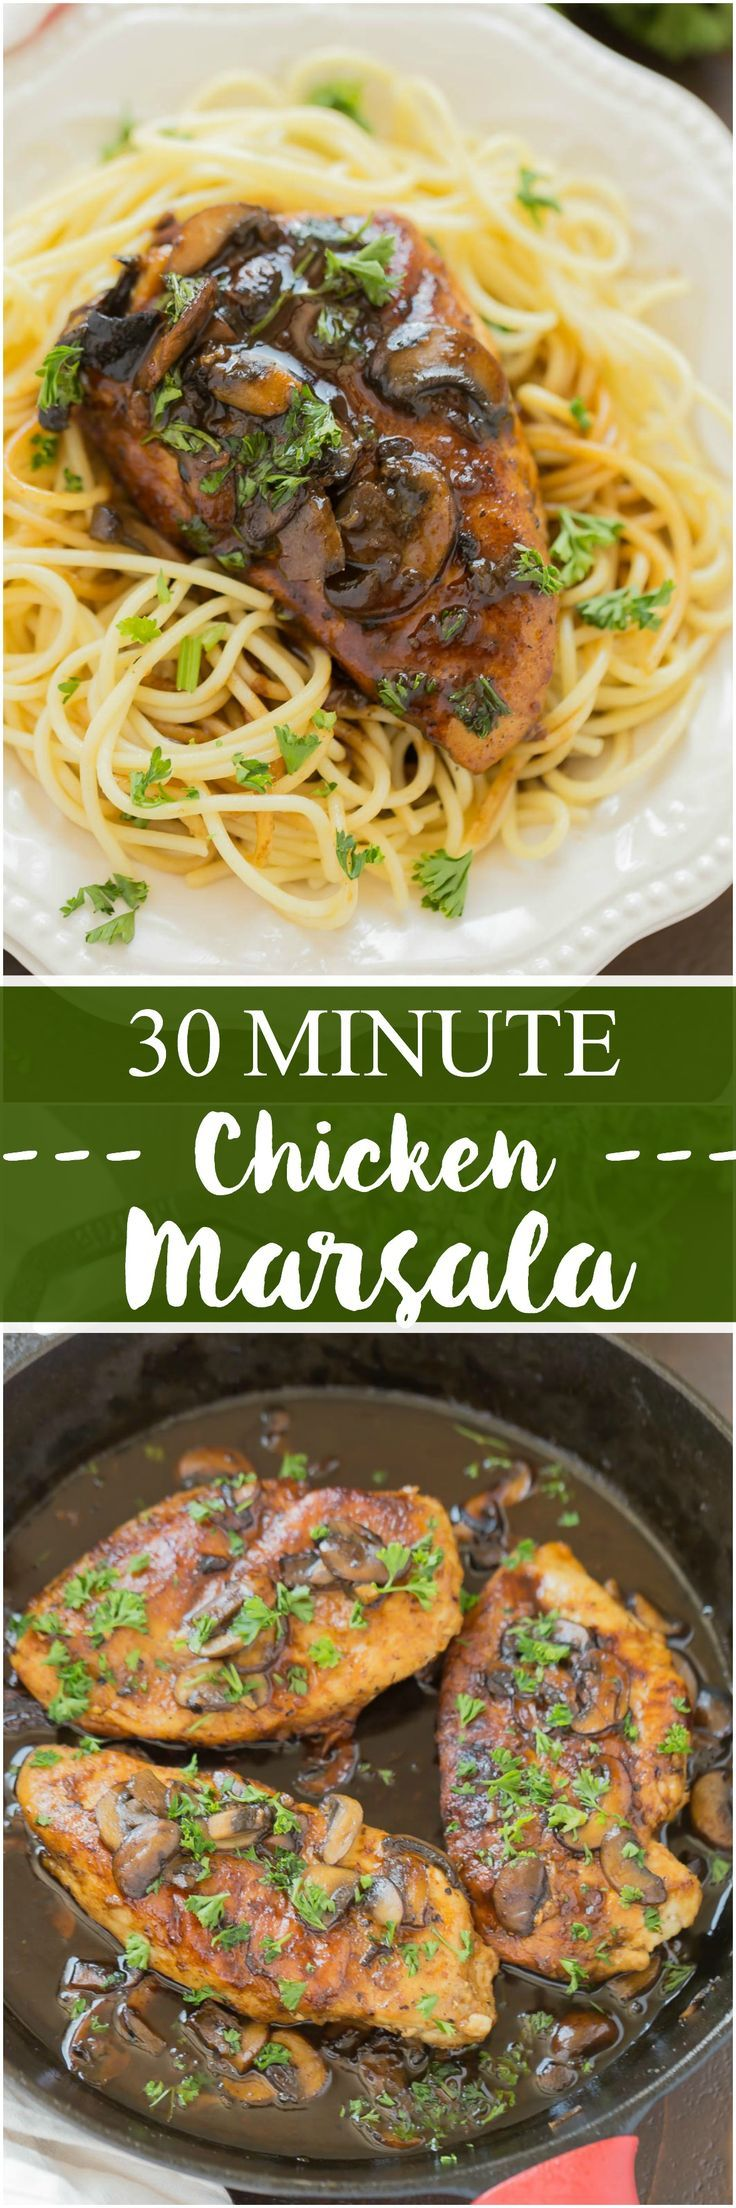 30 Minute Chicken Marsala is loaded with tons of flavor and ready within 30 minutes. This Chicken Marsala is perfect served with noodles or mashed potatoes. It's a win win for a quick meal! #dinner #30minutesmeals #quickandeasy #chicken #chickenmarsala #recipes